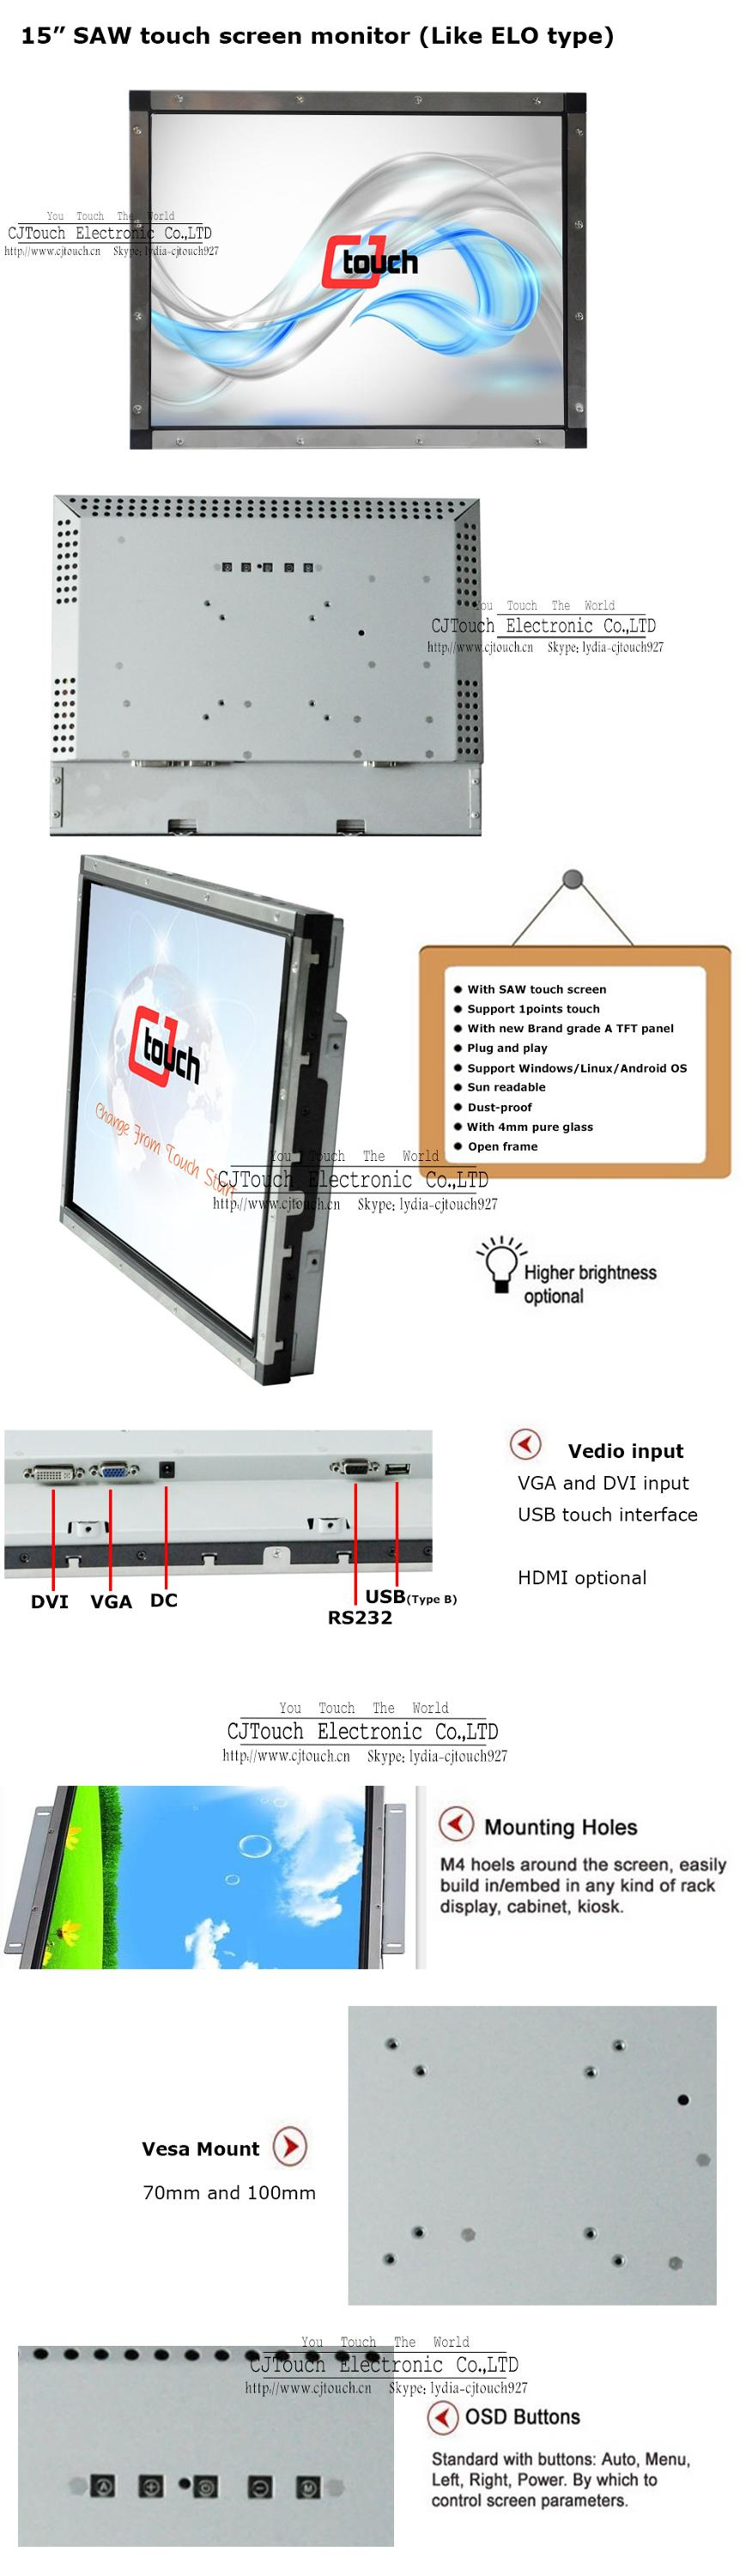 CJtouch custom-make 15 Inch Touch Monitor | Cheap Touch Screen Monitor | Open Frame Touch Monitor